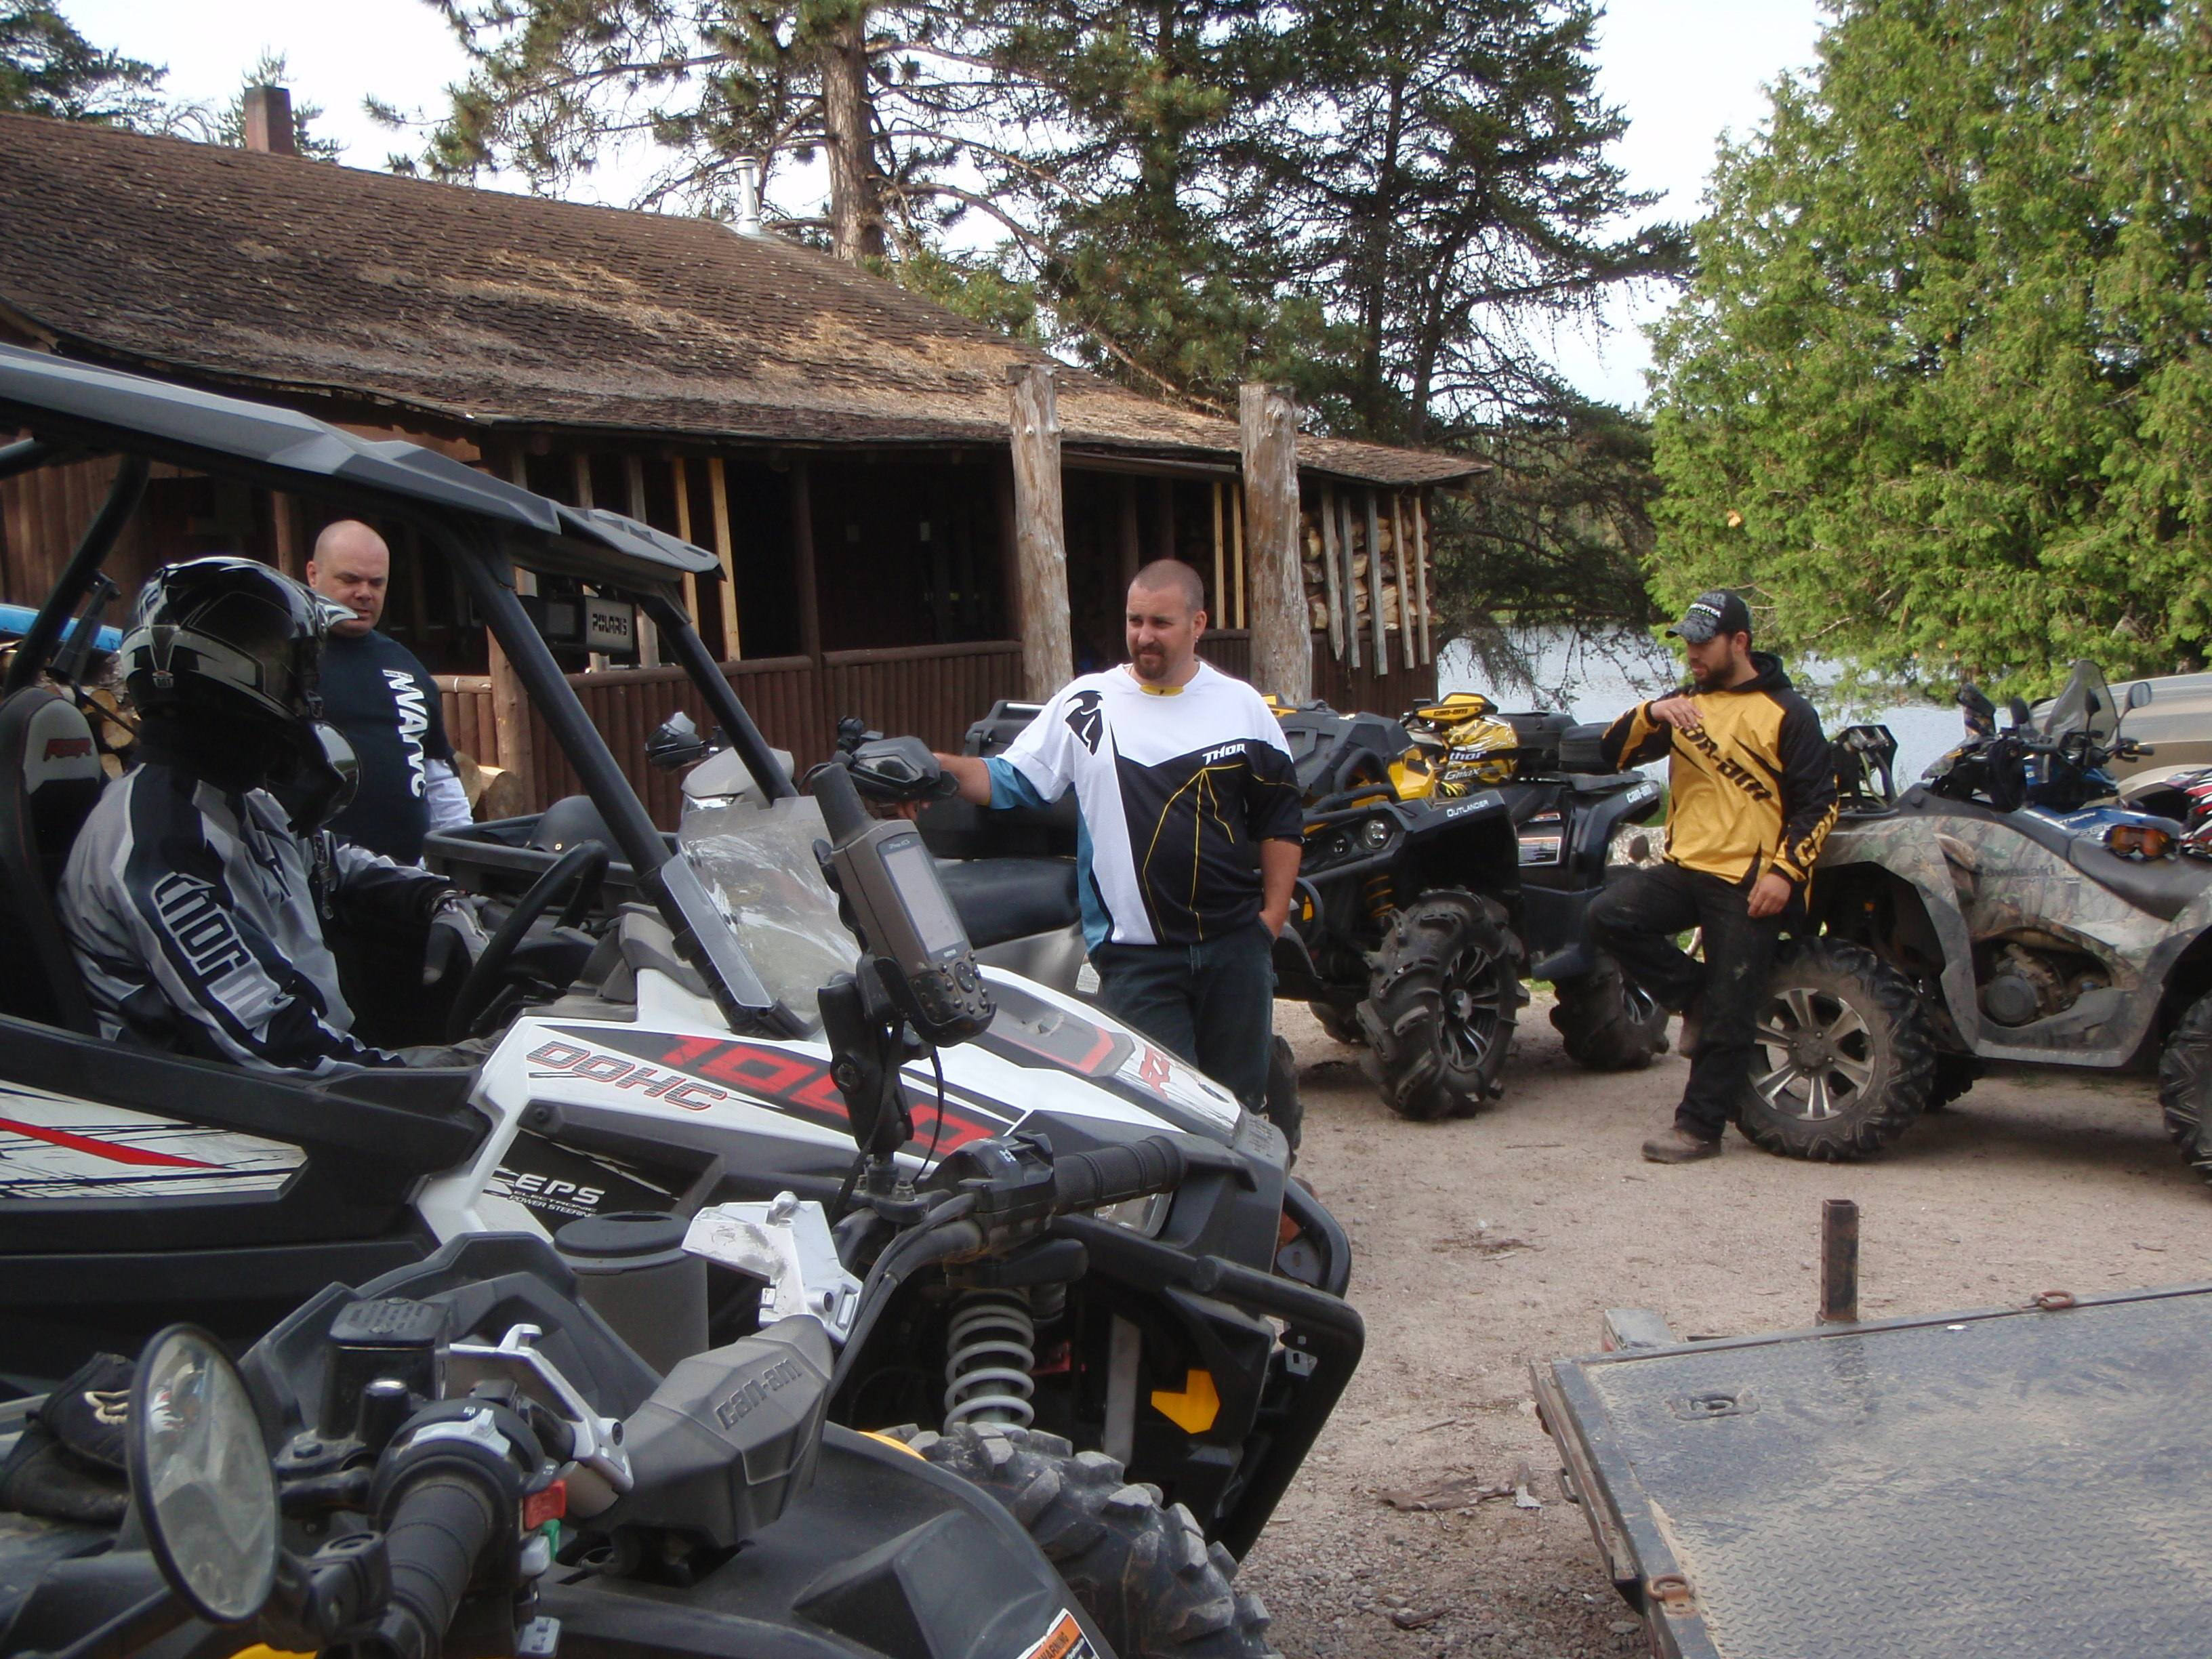 ritchie falls ready to ride smaller